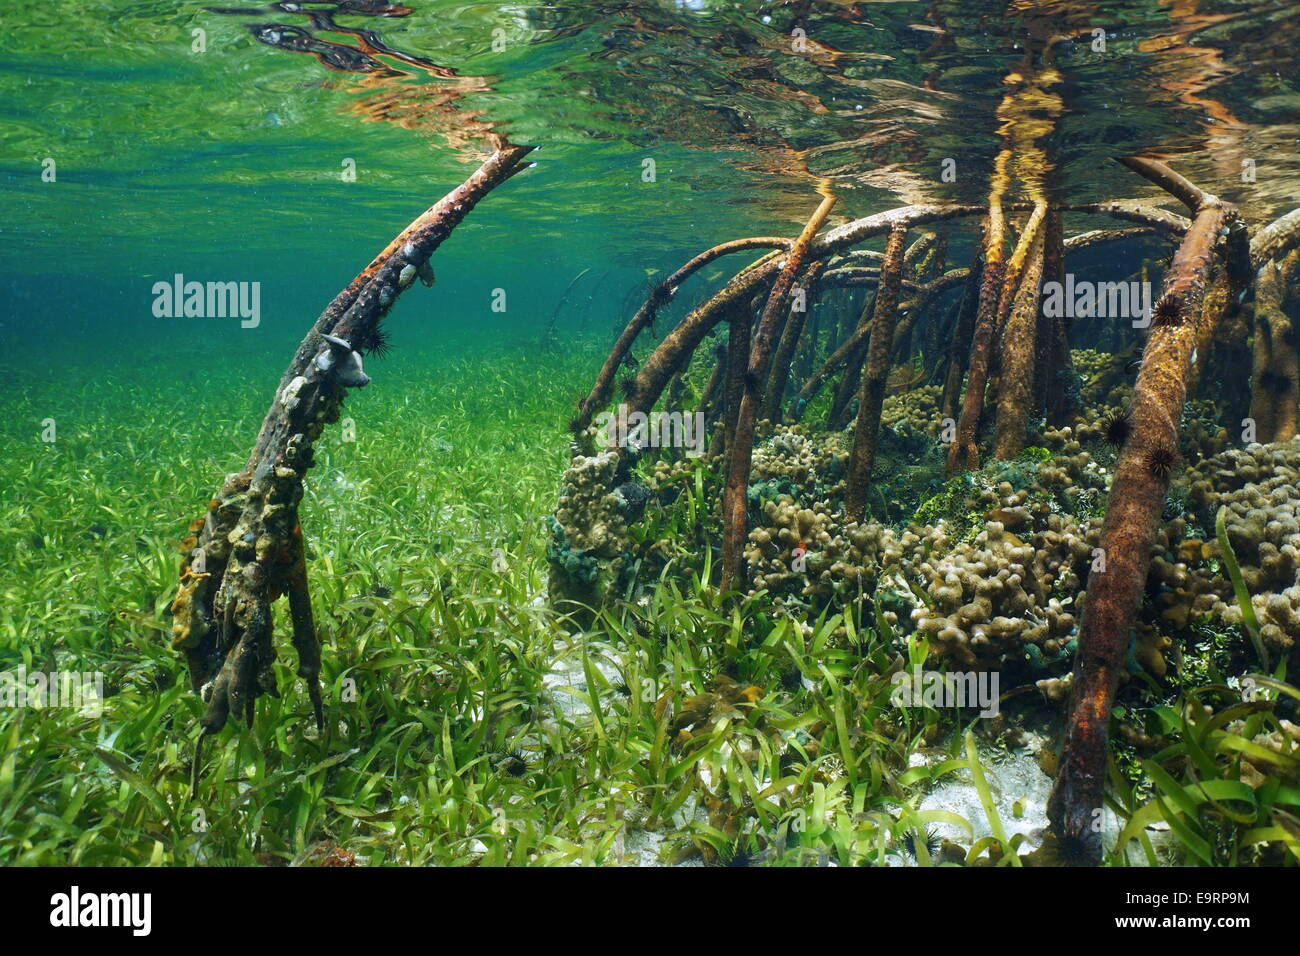 [PROJET]240l tetraodons et gobies-abeille eau saumâtre - Page 4 Mangrove-underwater-with-sea-life-in-the-roots-atlantic-ocean-bahamas-E9RP9M